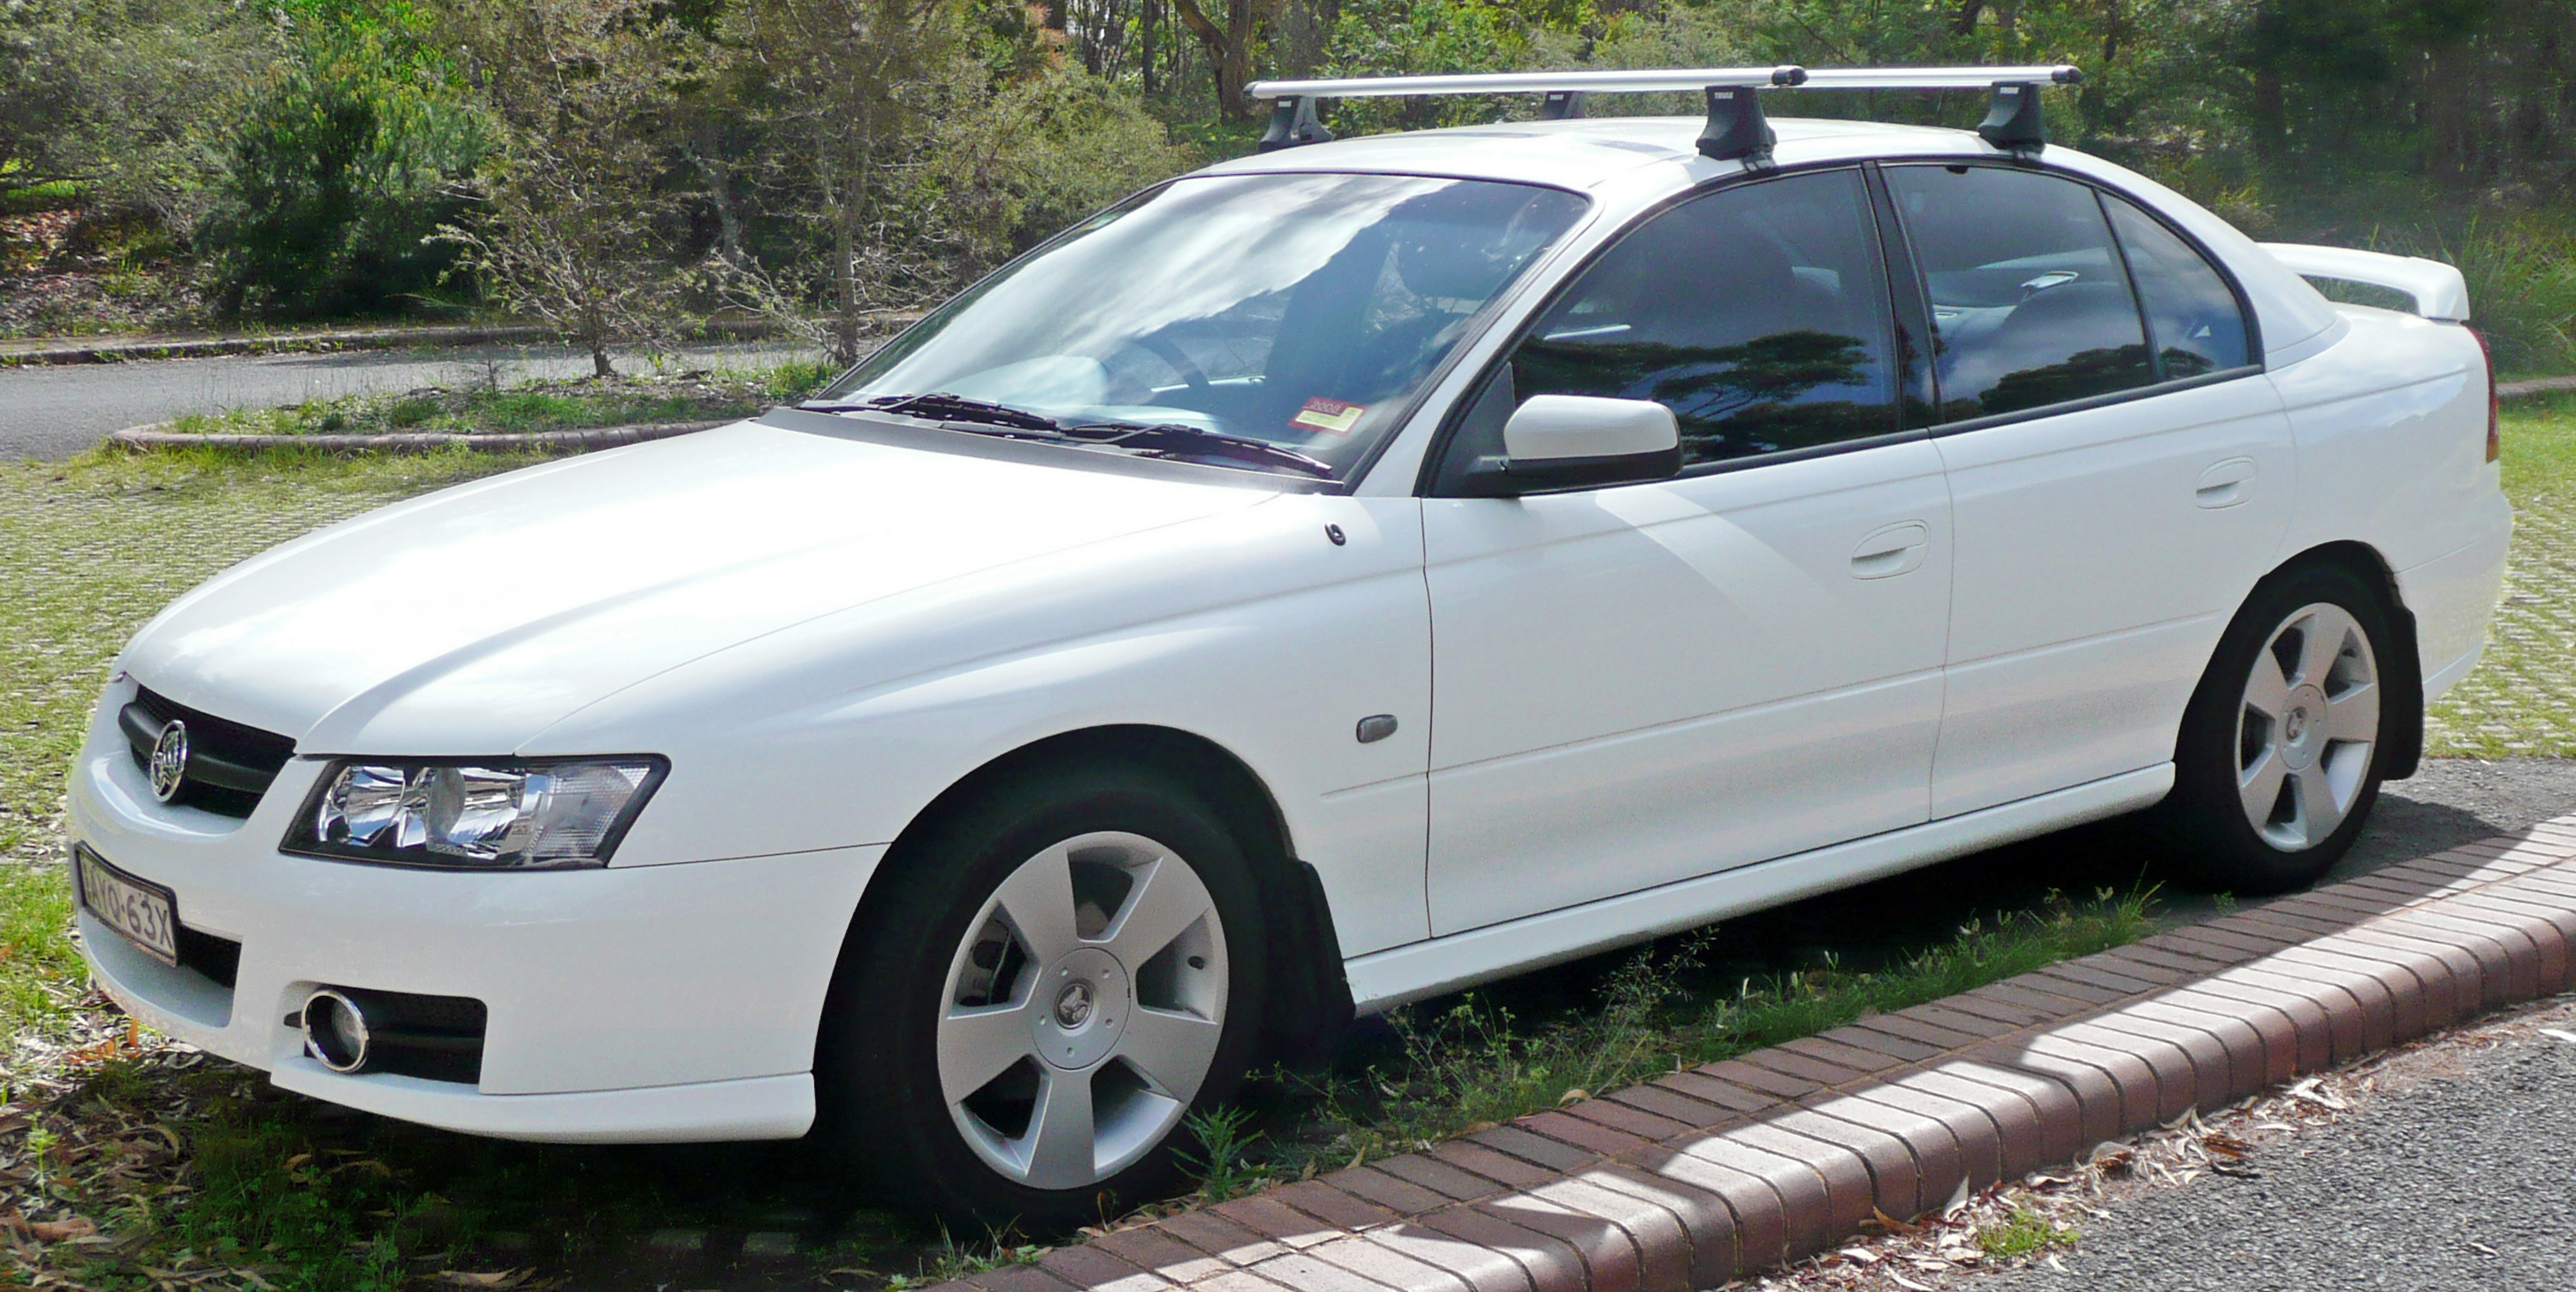 holden commodore (vt) 2006 images #5